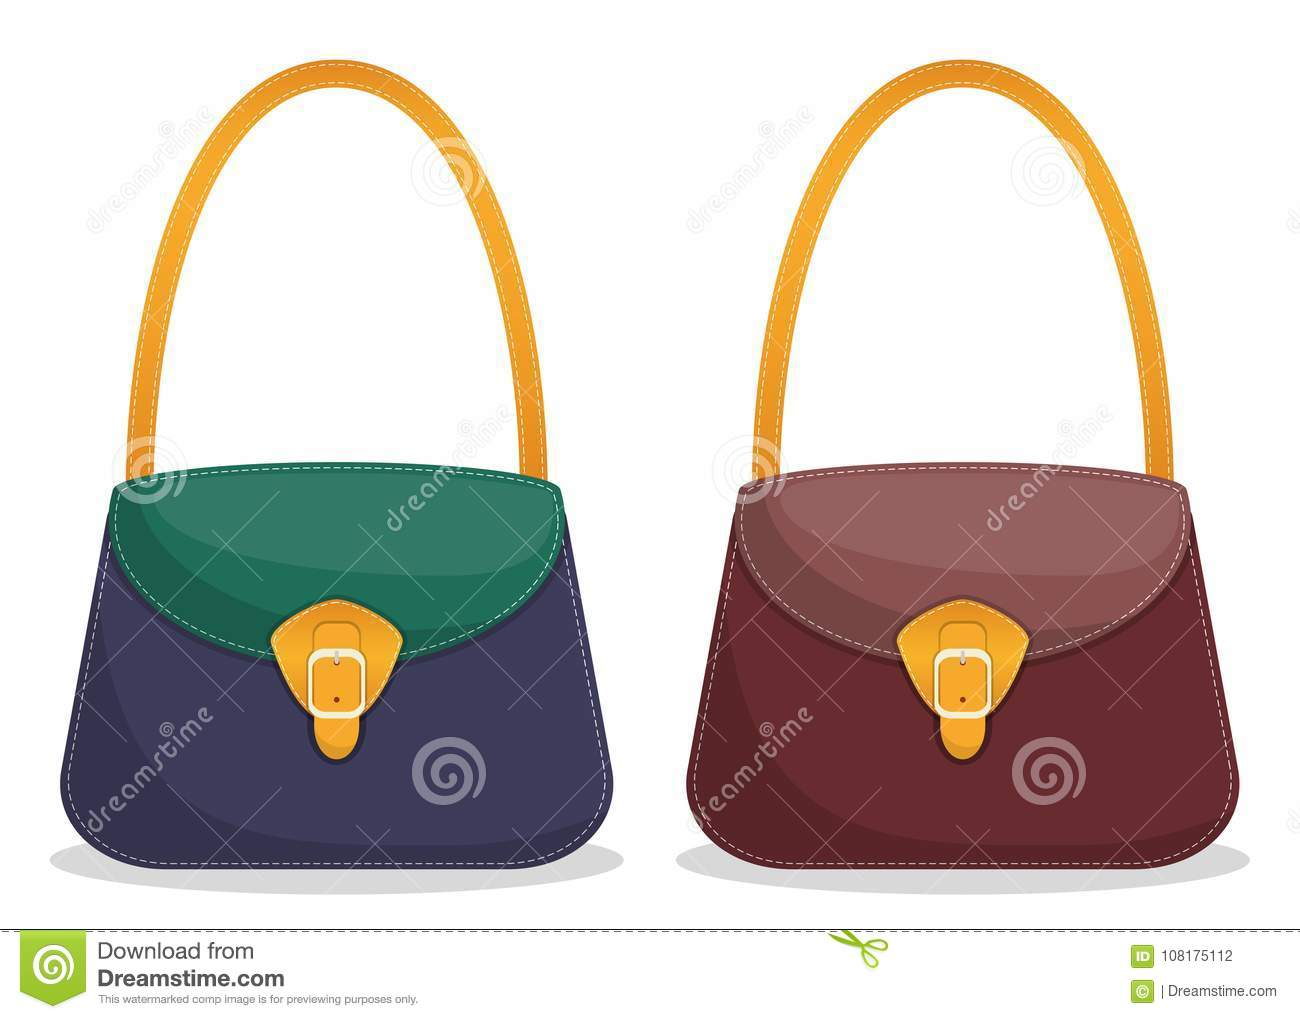 2e7da0b8f4 Collection of stylish colorful leather handbags with white stitching.  Fashionable women s bags isolated on